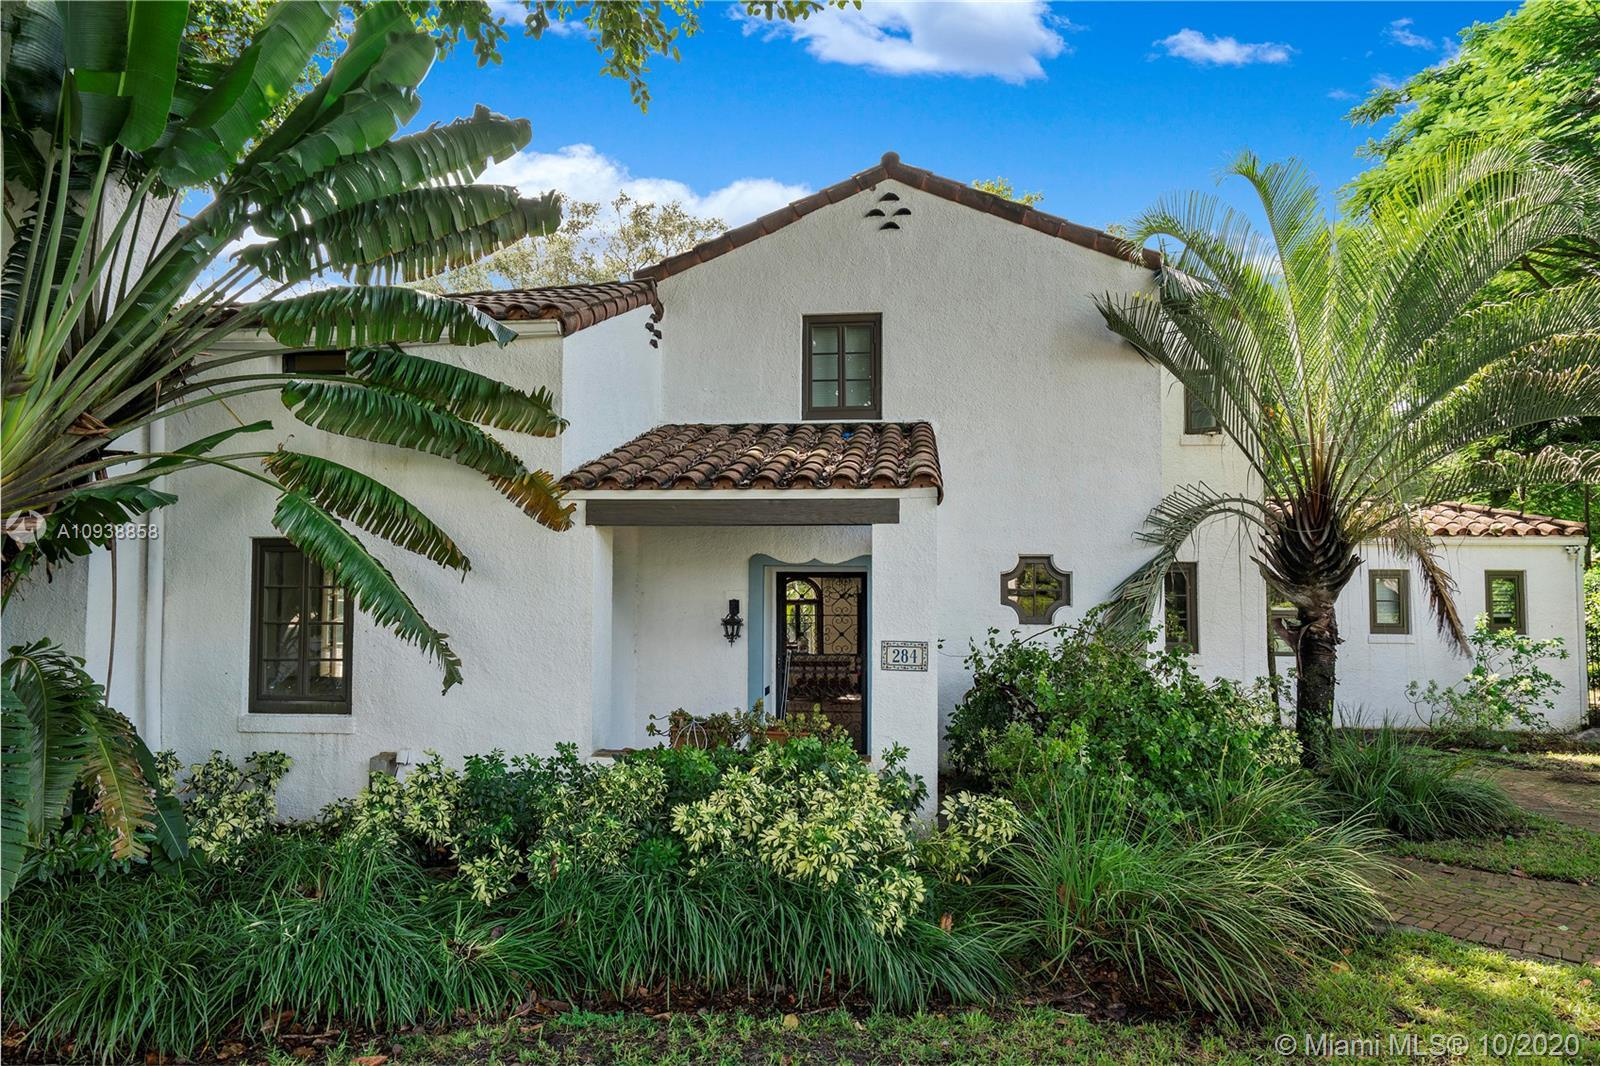 RARE OPPORTUNITY TO BE PART OF HISTORY!  TAKE ADVANTAGE & PURCHASED THIS AMAZING SPANISH REVIVAL UND